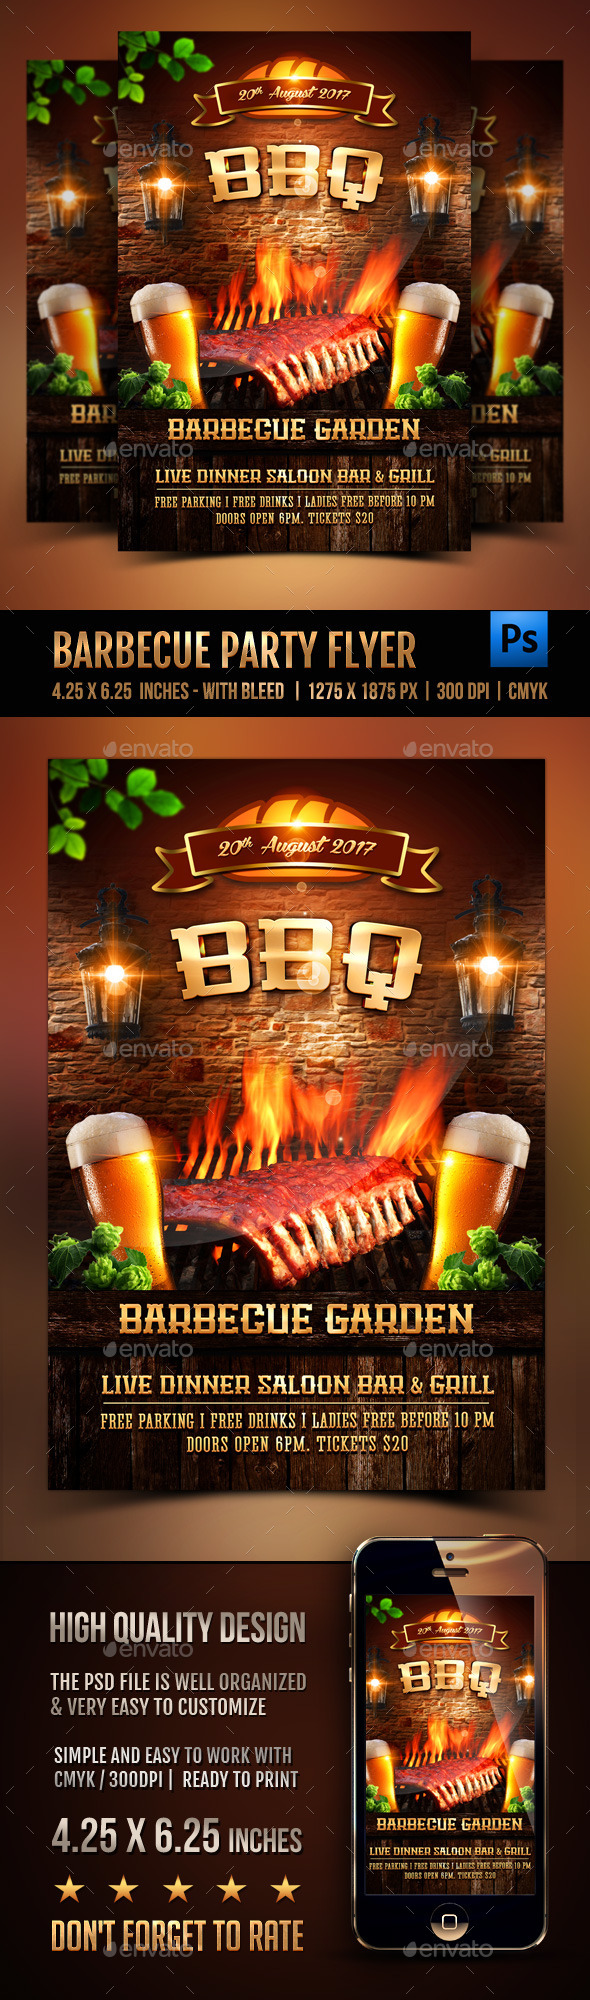 Barbecue Party Flyer - Events Flyers